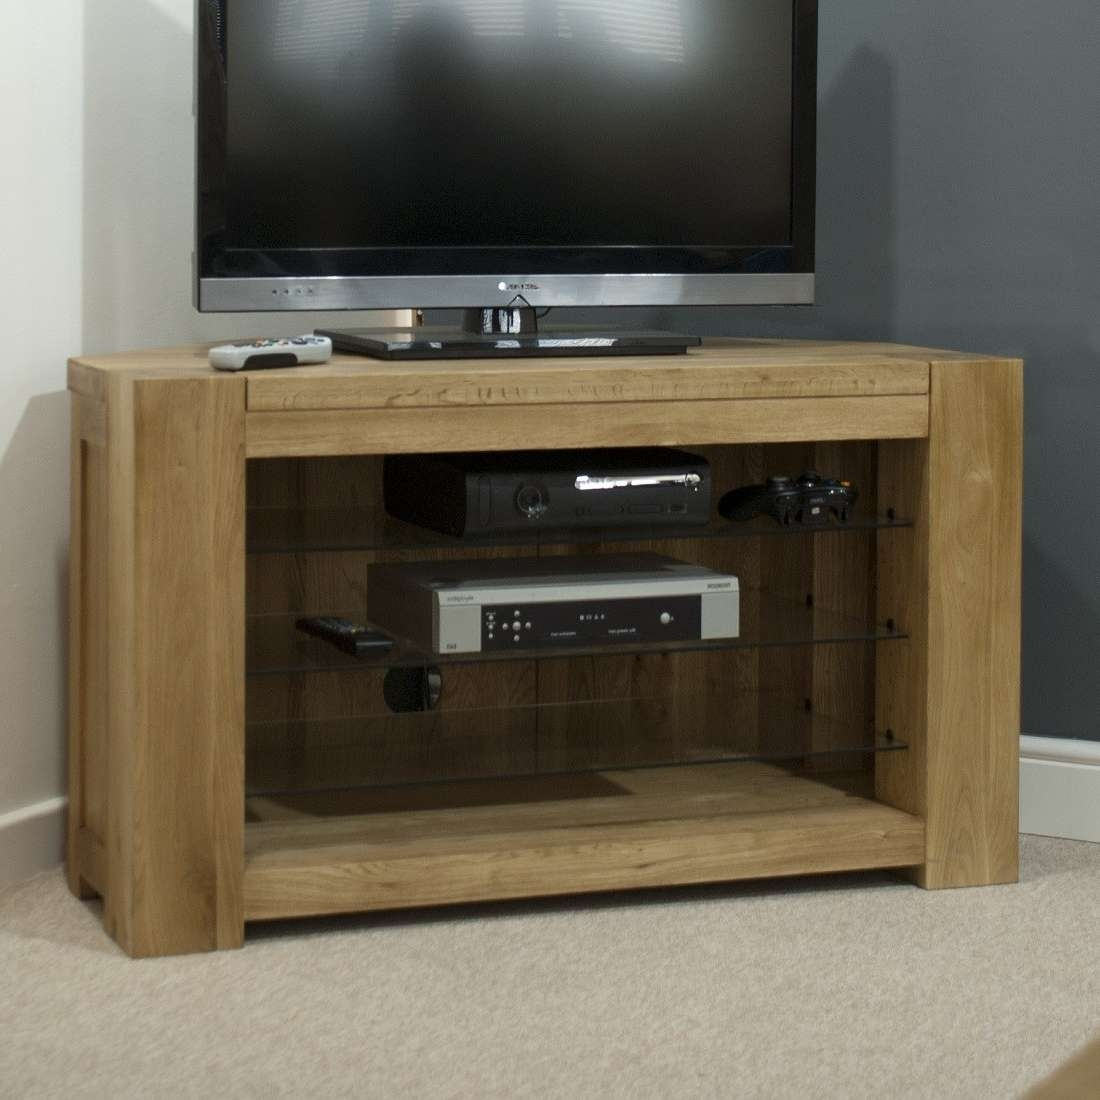 Trend Solid Oak Corner Tv Unit | Oak Furniture Uk In Oak Corner Tv Cabinets (View 12 of 20)